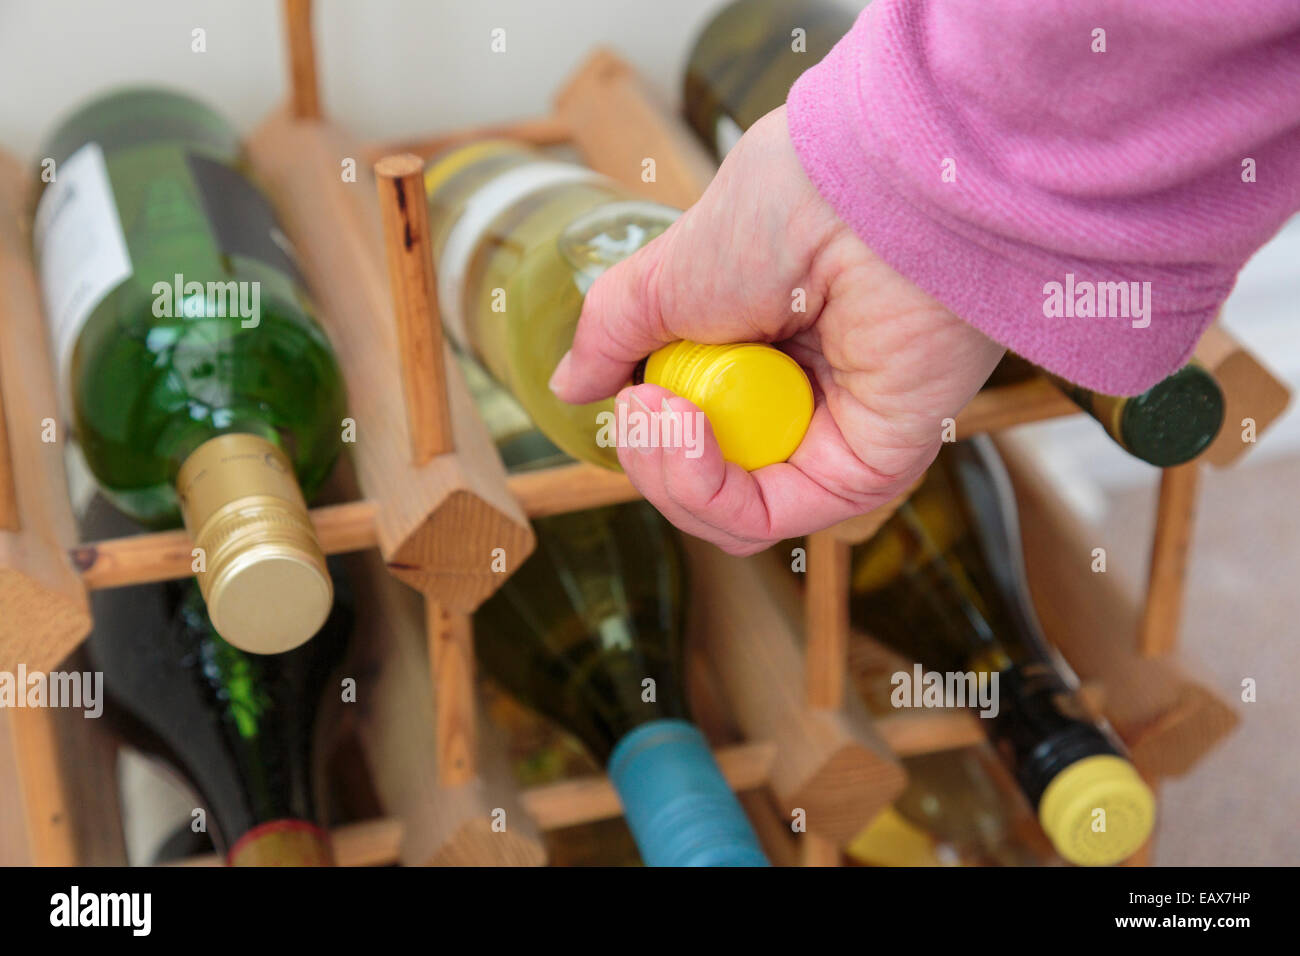 Everyday scene where a woman chooses a bottle of white wine to drink from a wine rack at home. Lifestyle concept. - Stock Image